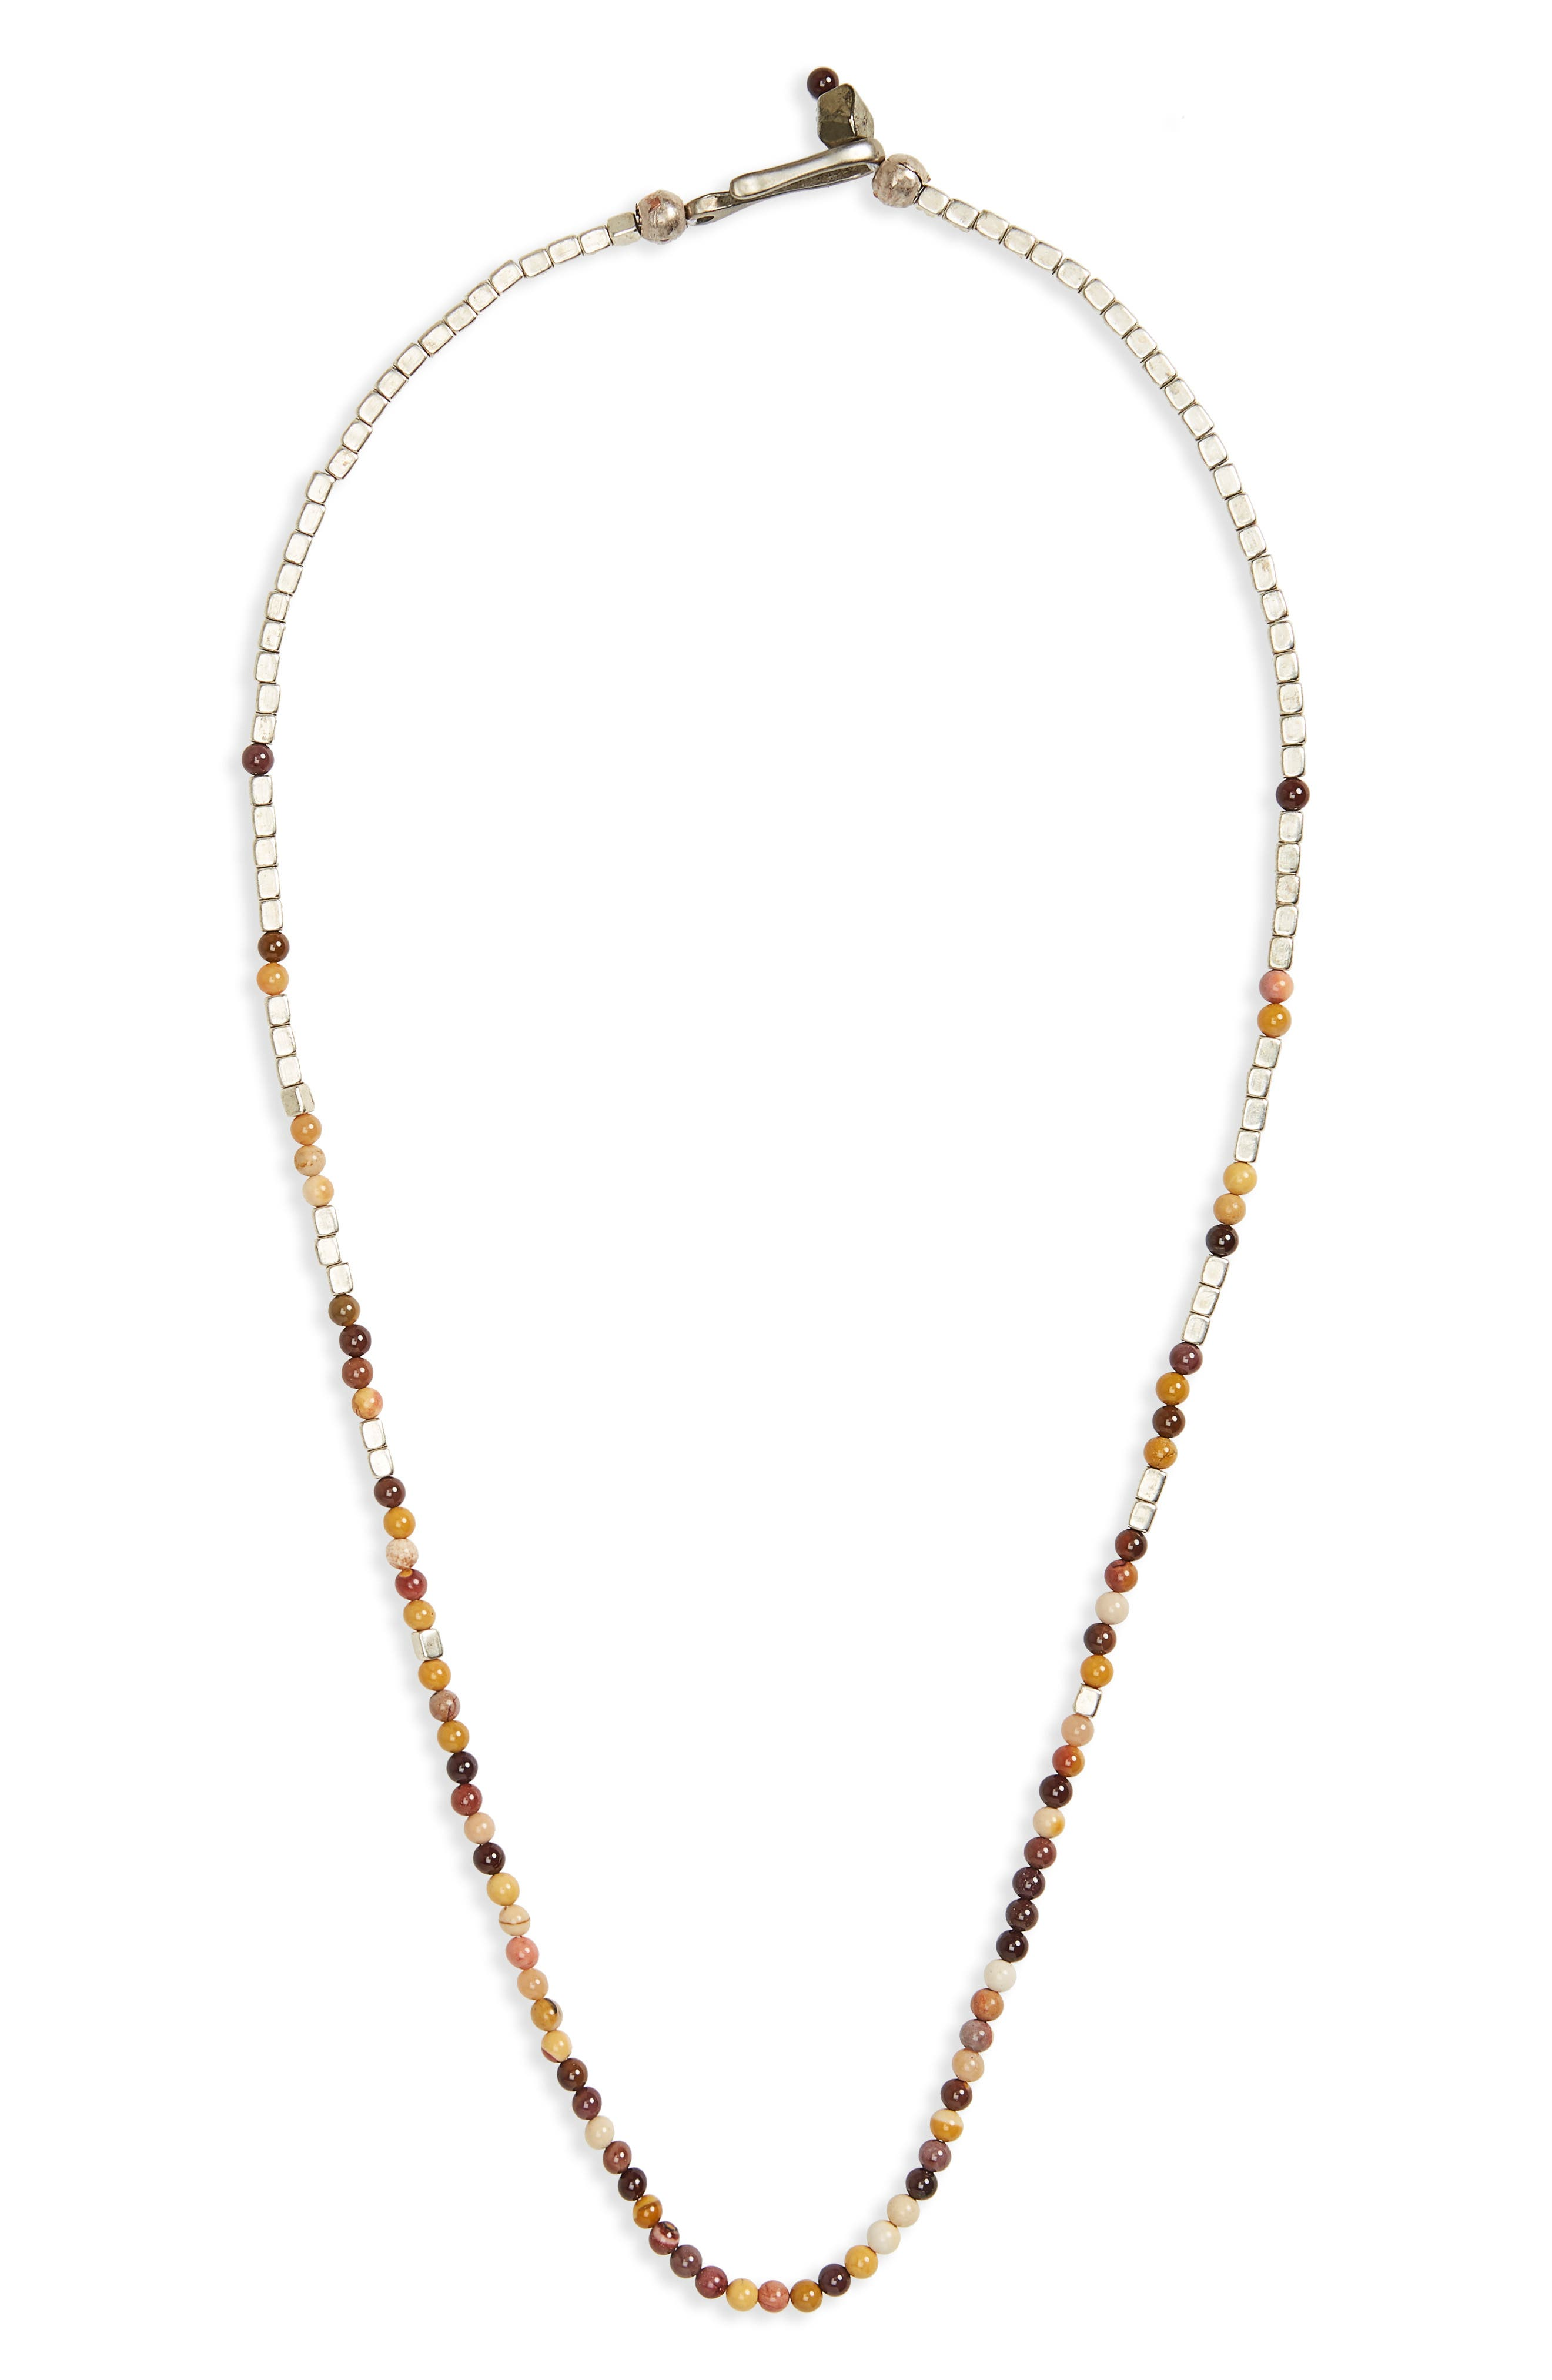 Mookaite Bead Necklace,                             Main thumbnail 1, color,                             SILVER/ BROWN